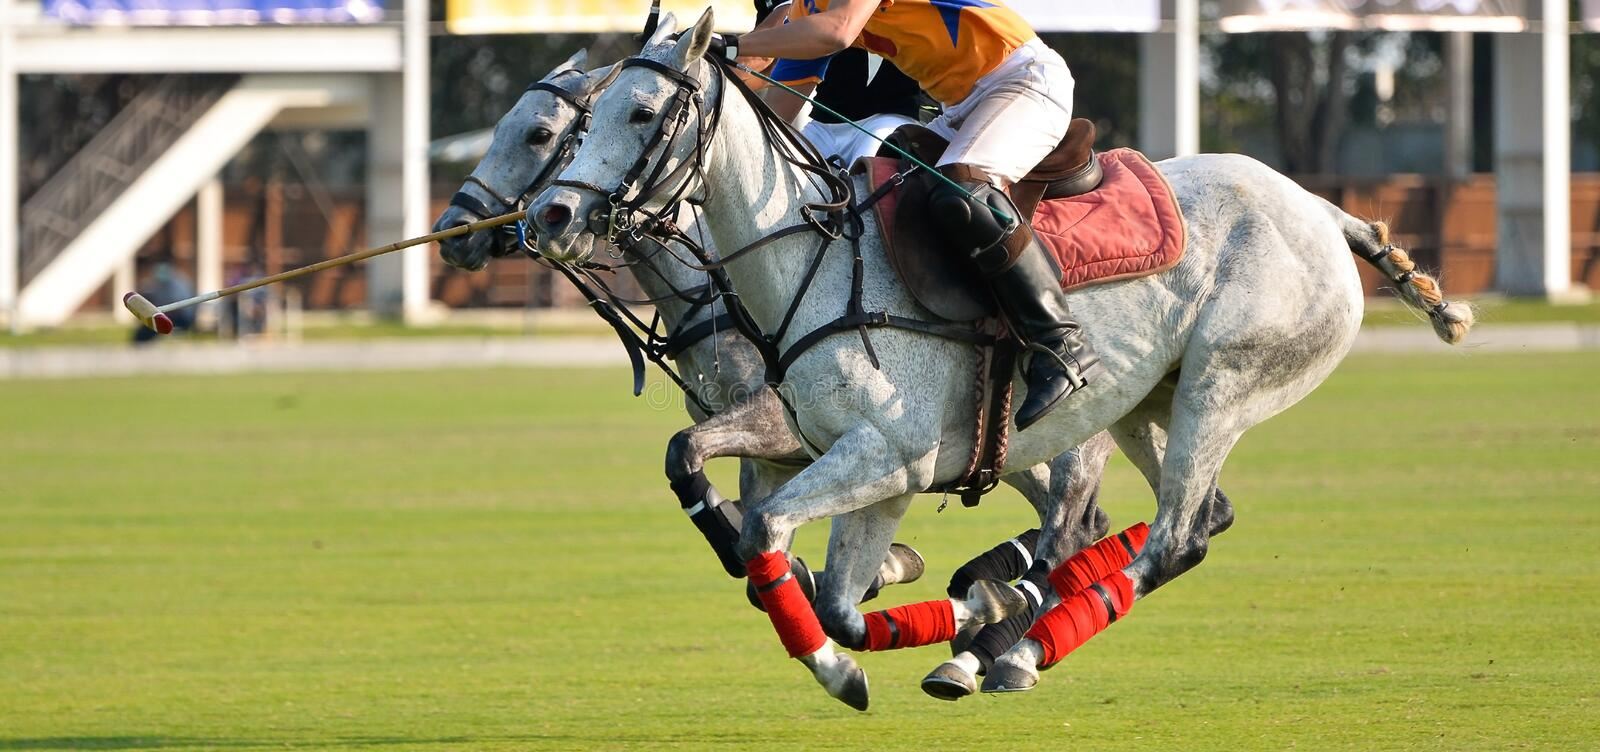 Selective focus the horse running at the same time, The polo players ride their horses during a match,  2 Horse full speed in Polo. Sport stock image